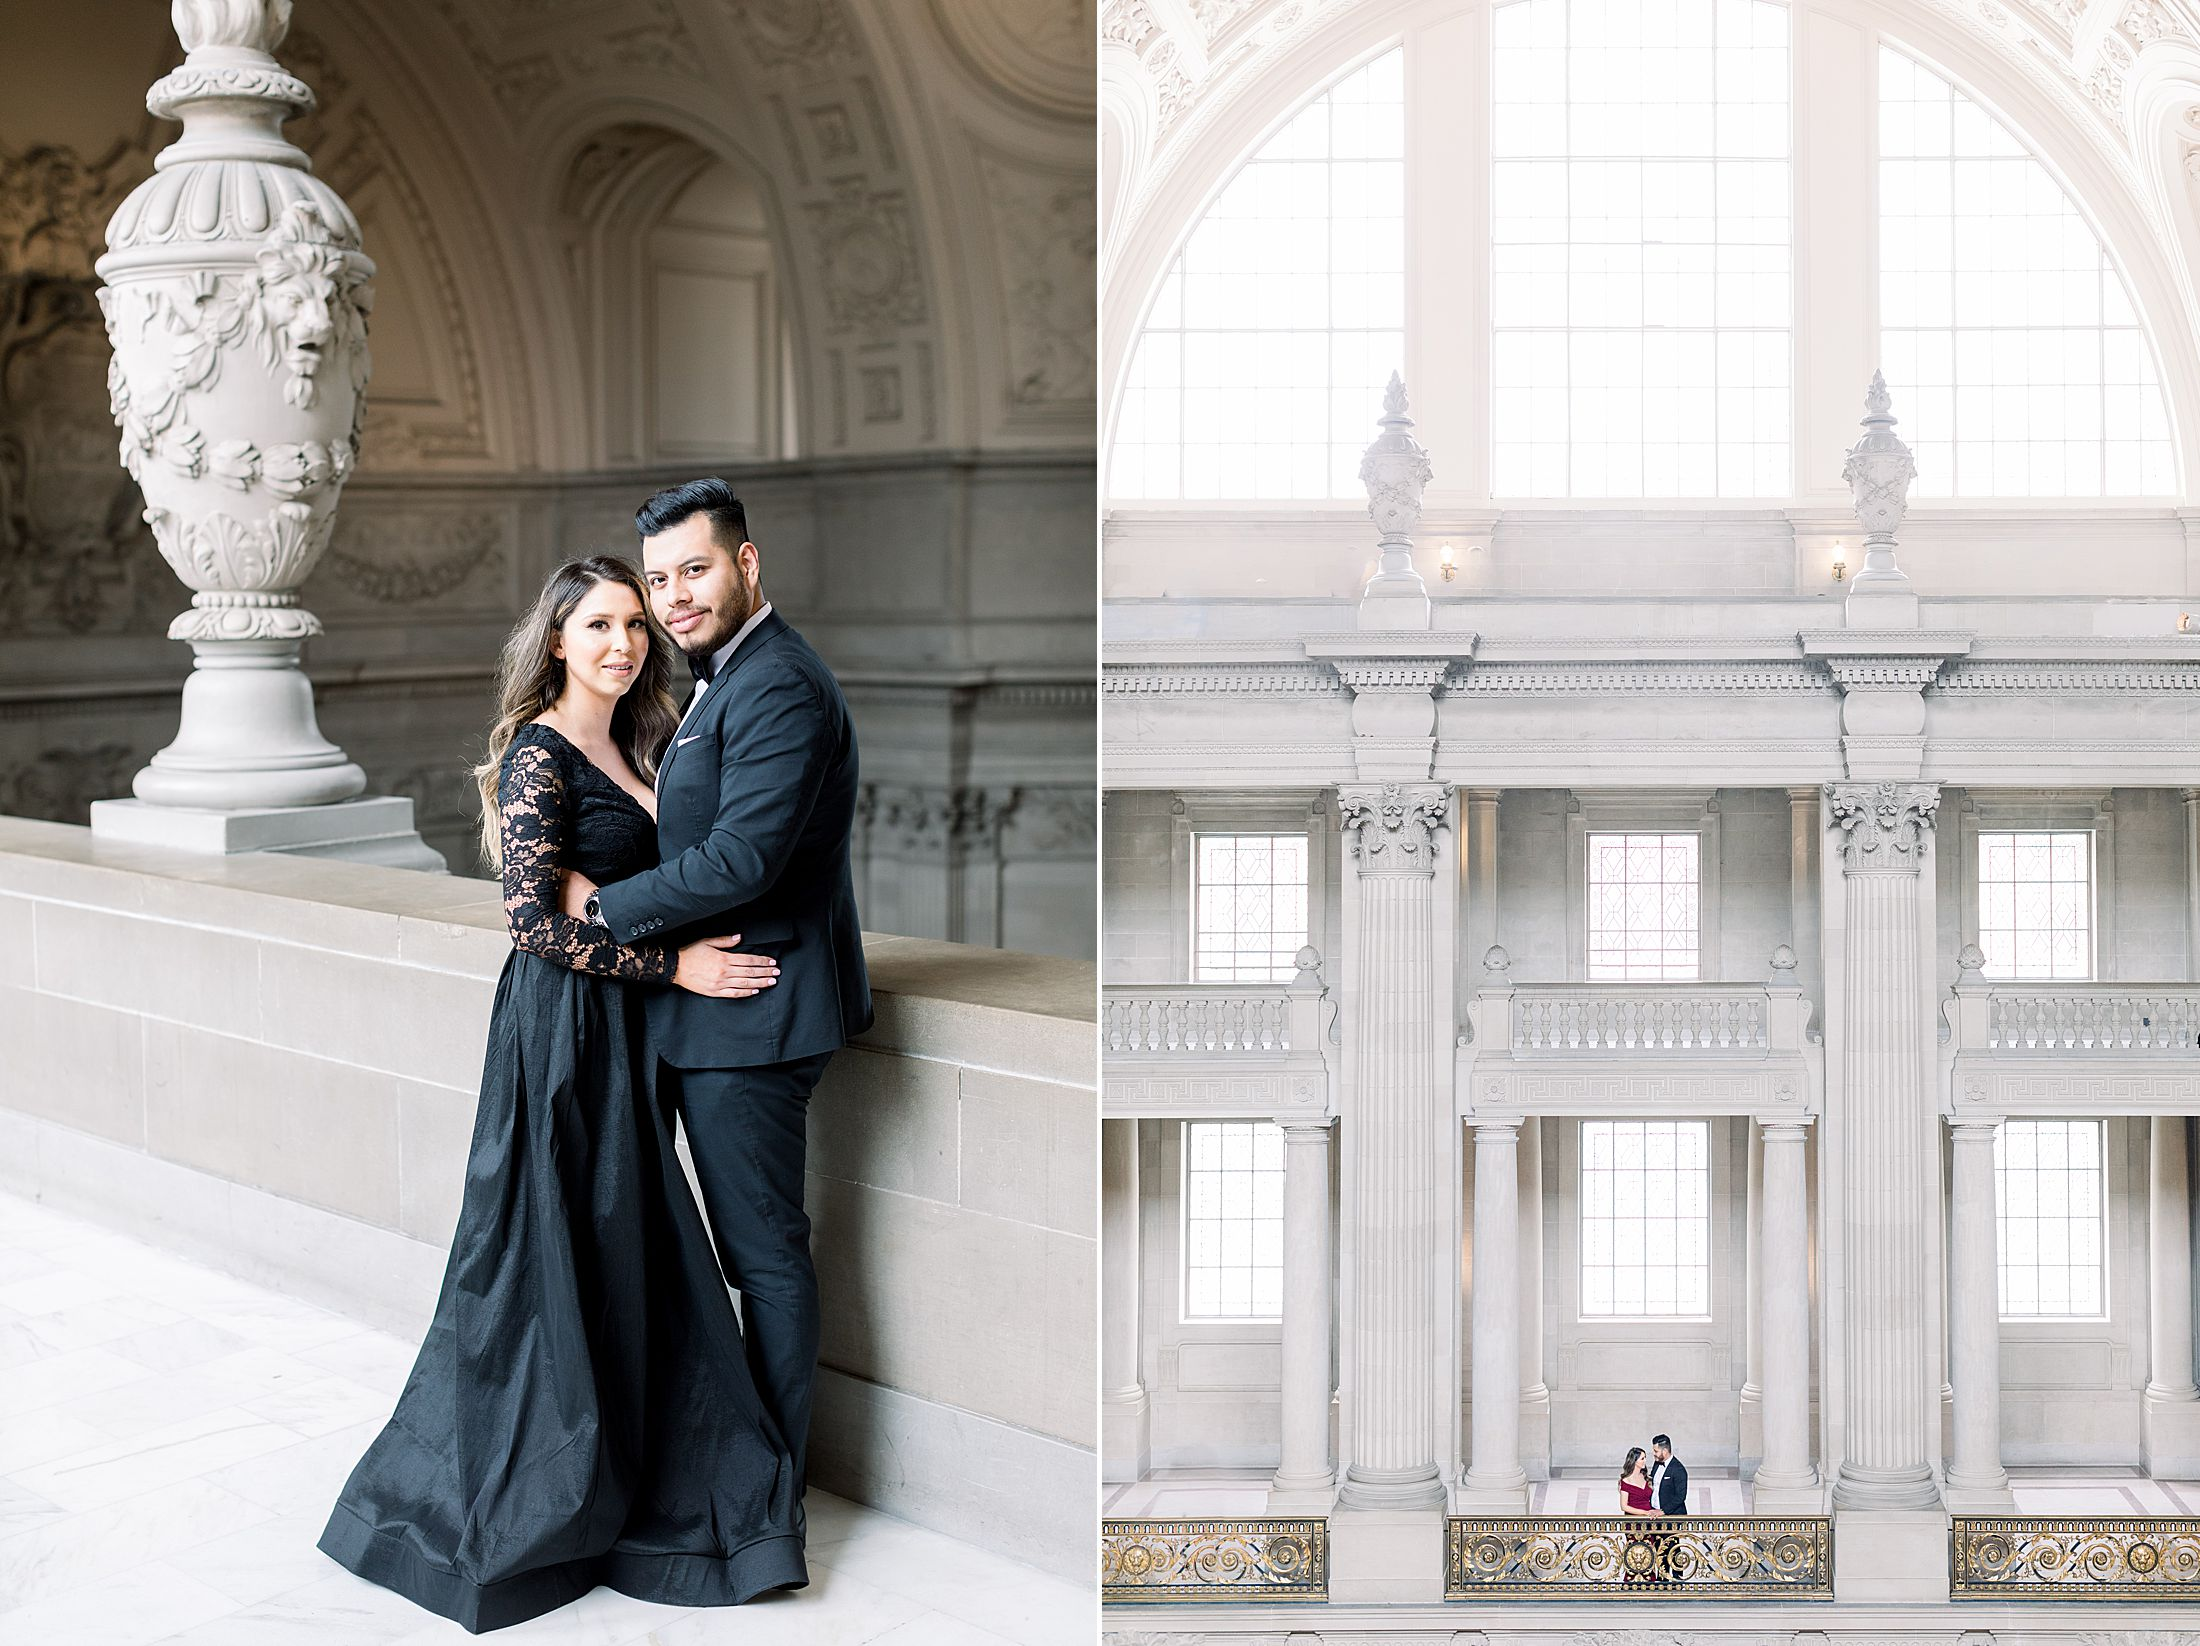 SF City Hall Black Tie Engagement and Palace of Fine Arts Engagement - Ashley Baumgartner - Esmeralda and Jesus - SF Wedding Photographer_0012.jpg